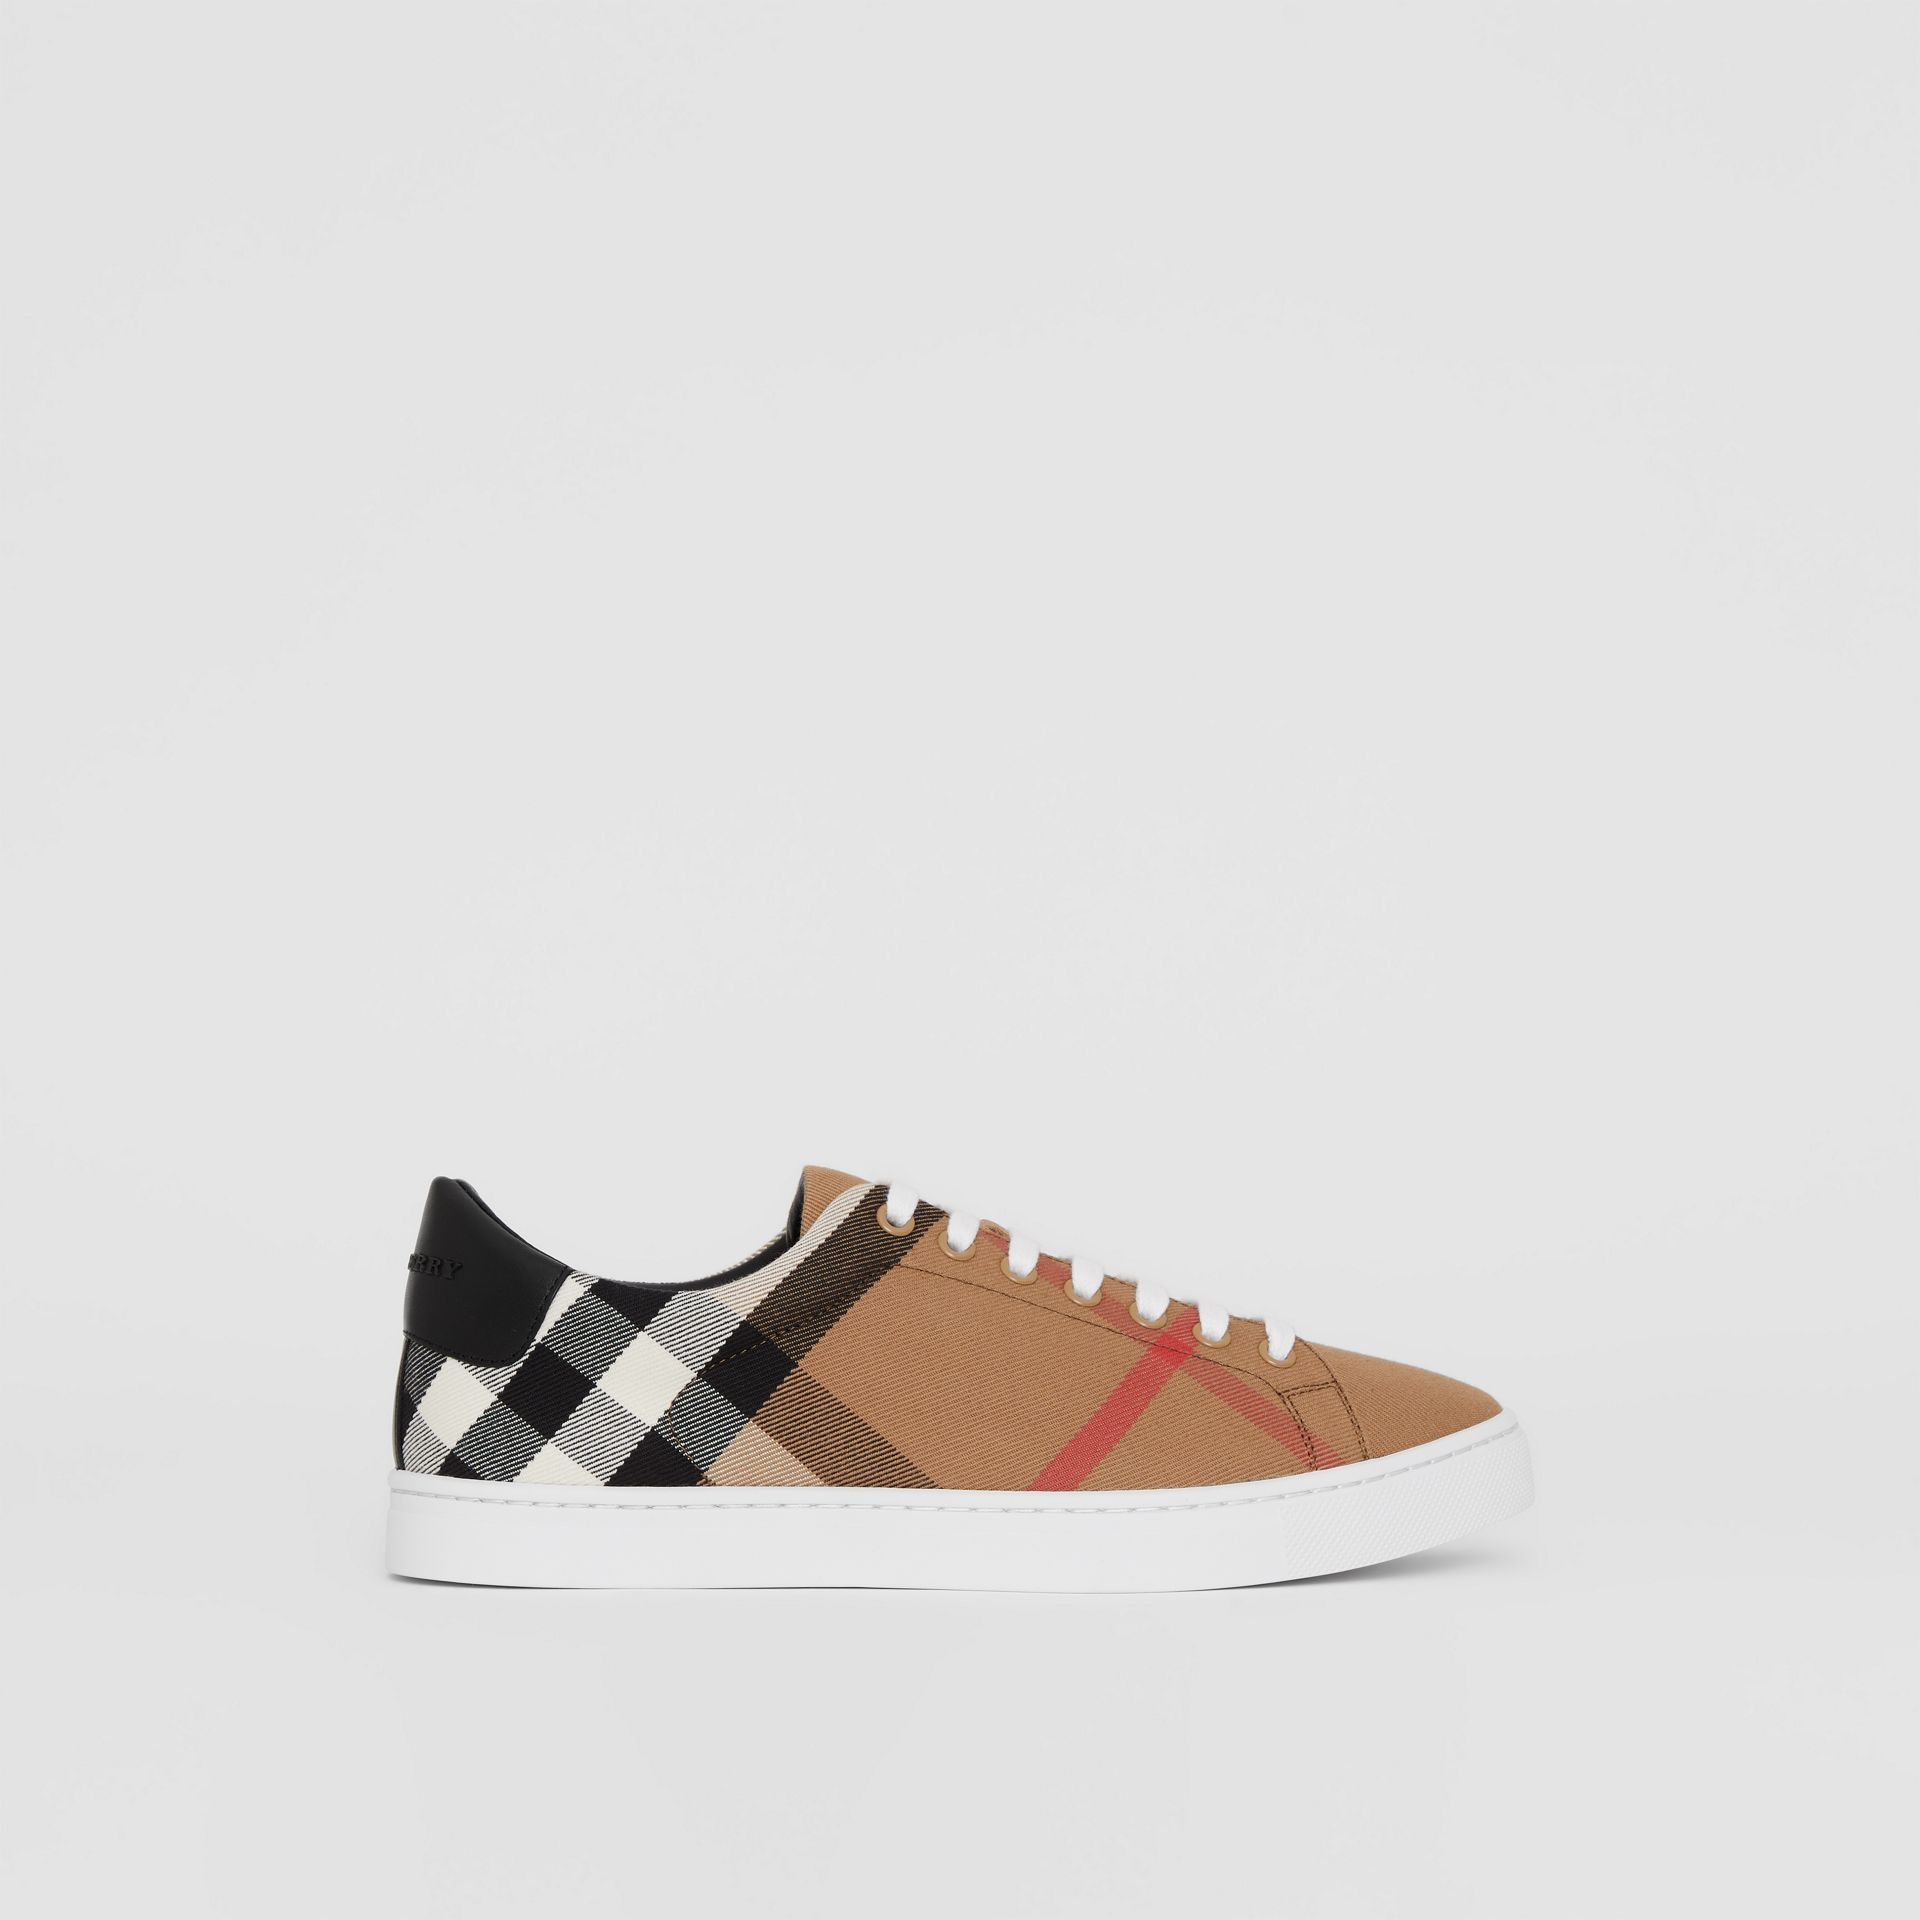 Sneakers en coton House check et cuir (Check/noir) - Homme | Burberry - photo de la galerie 4